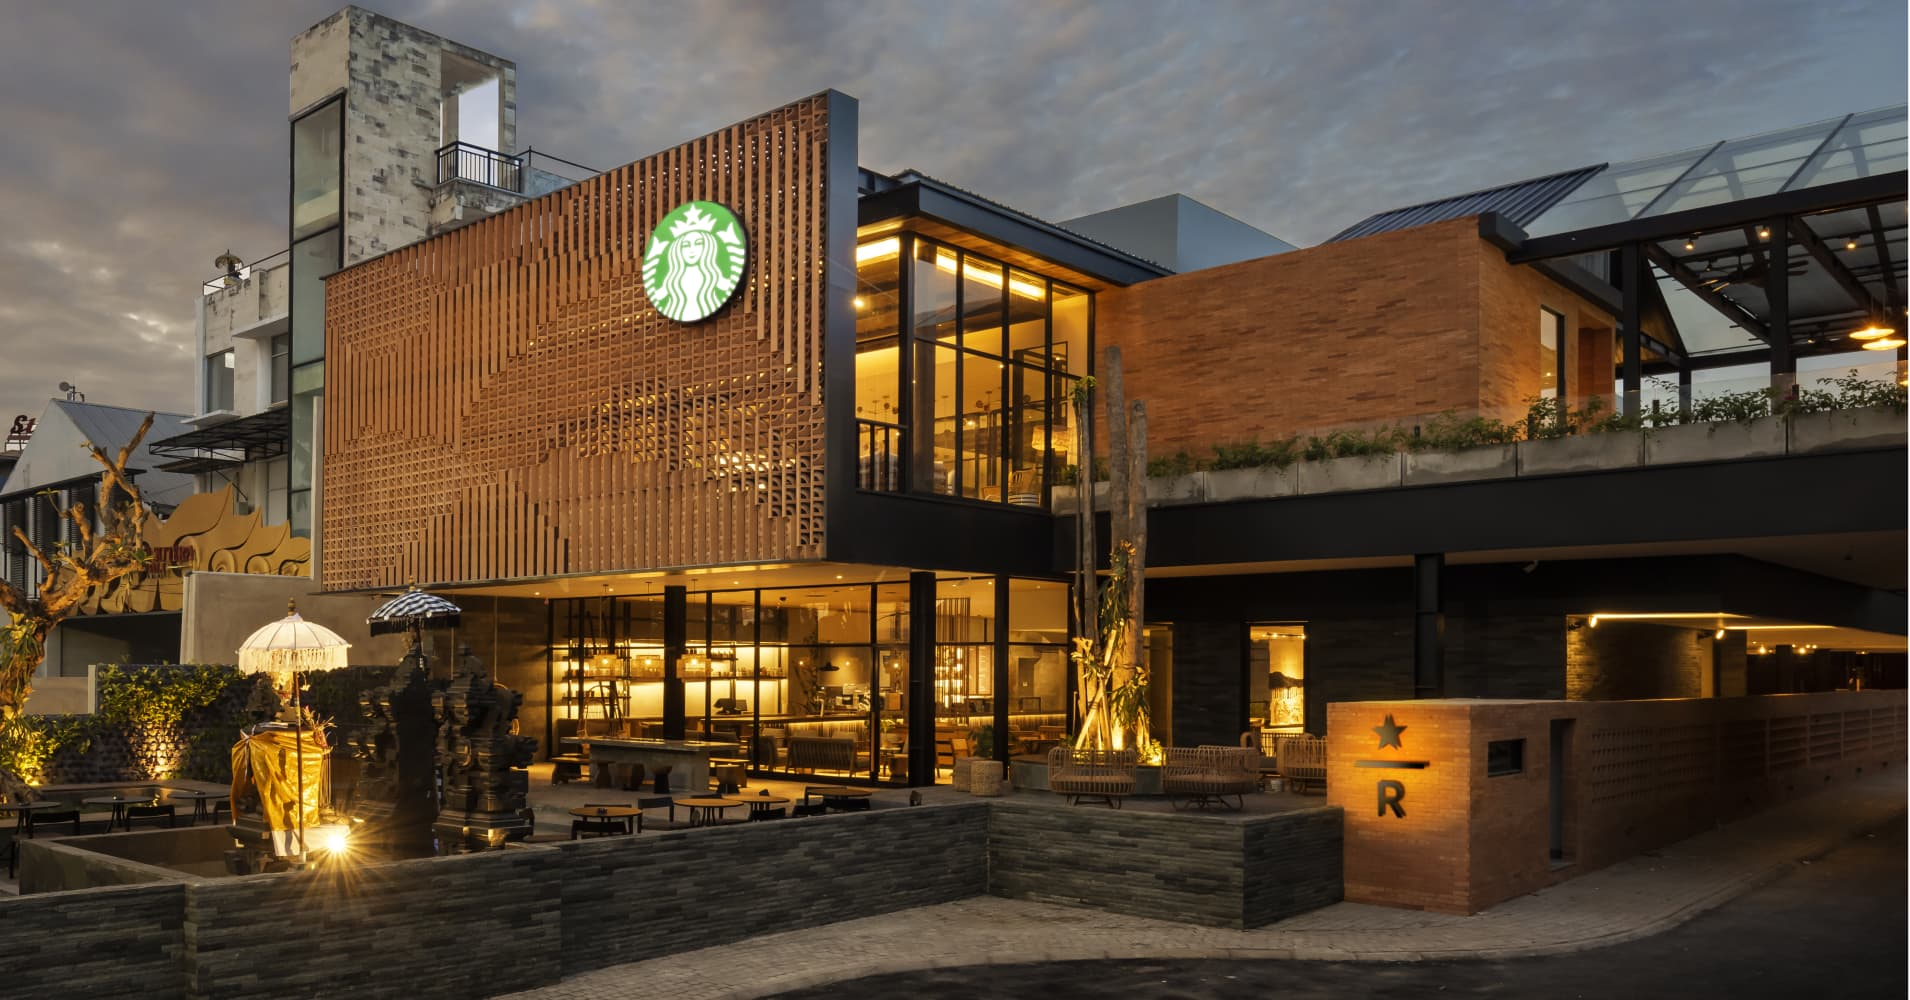 Bali's new Starbucks flagship store has its own coffee farm and valet parking